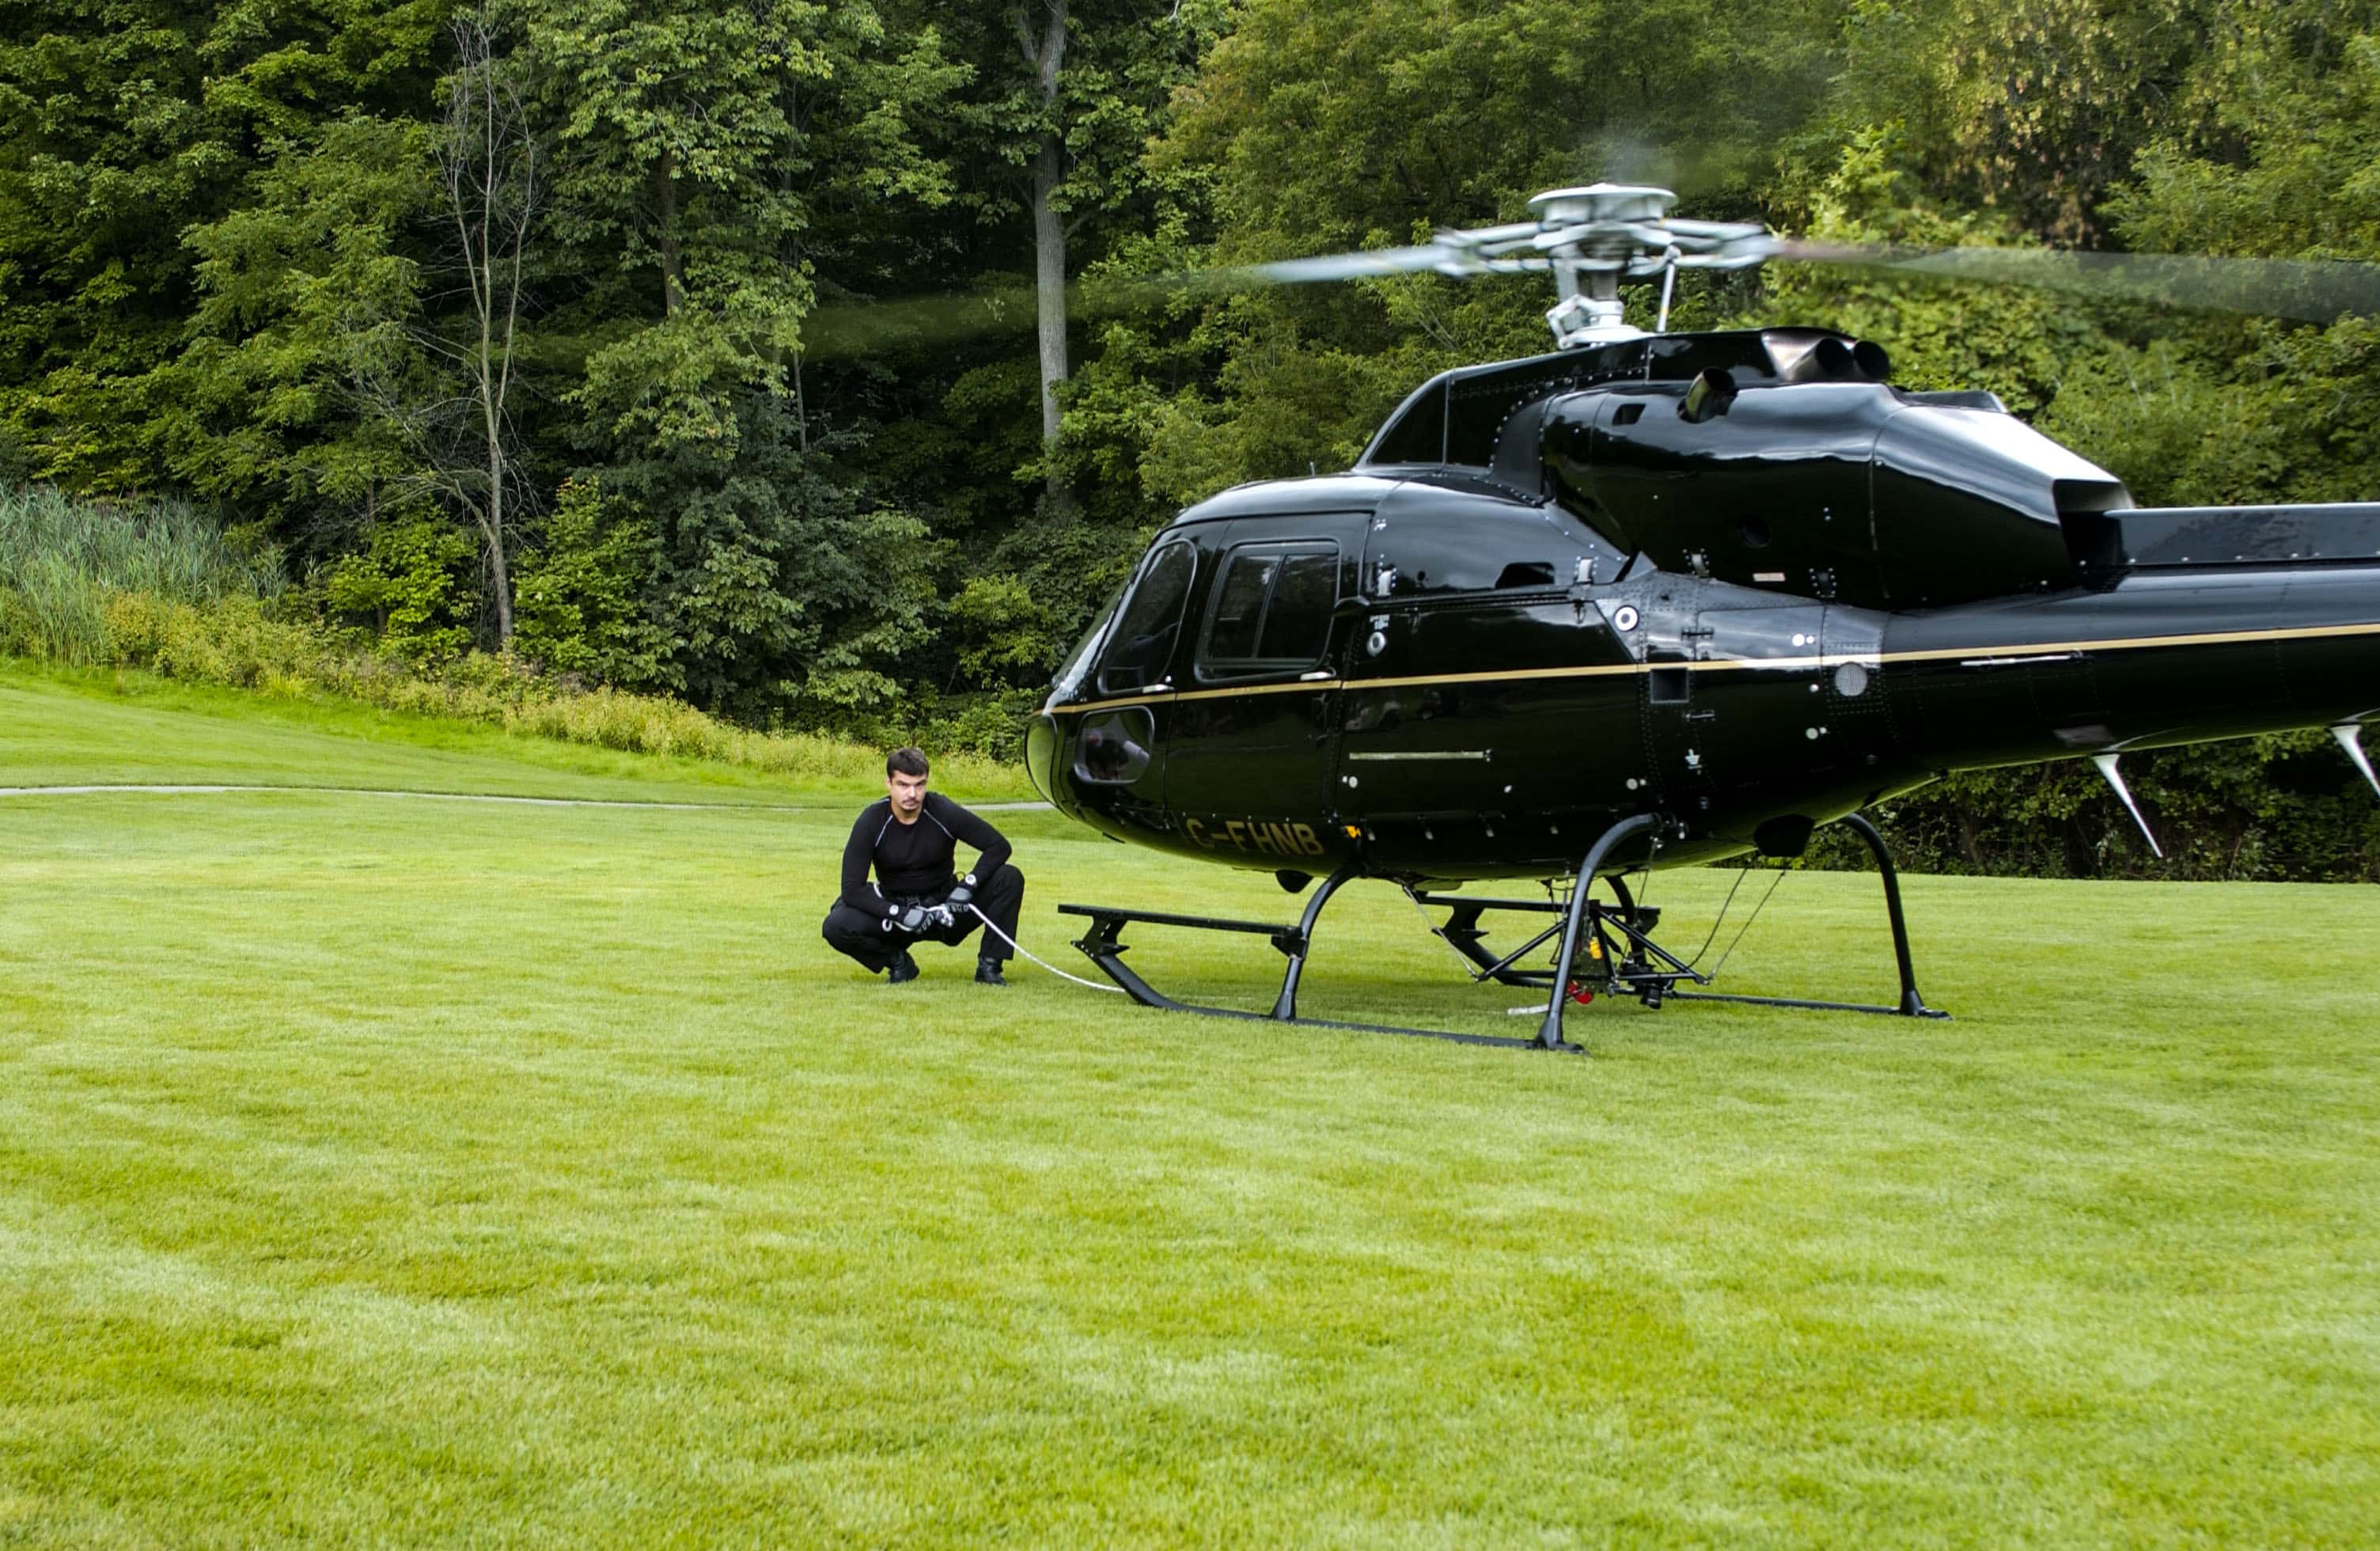 Helicopter: Eurocopter AS355 F1 TwinStar. Rappelling from a centre positioned hoist system